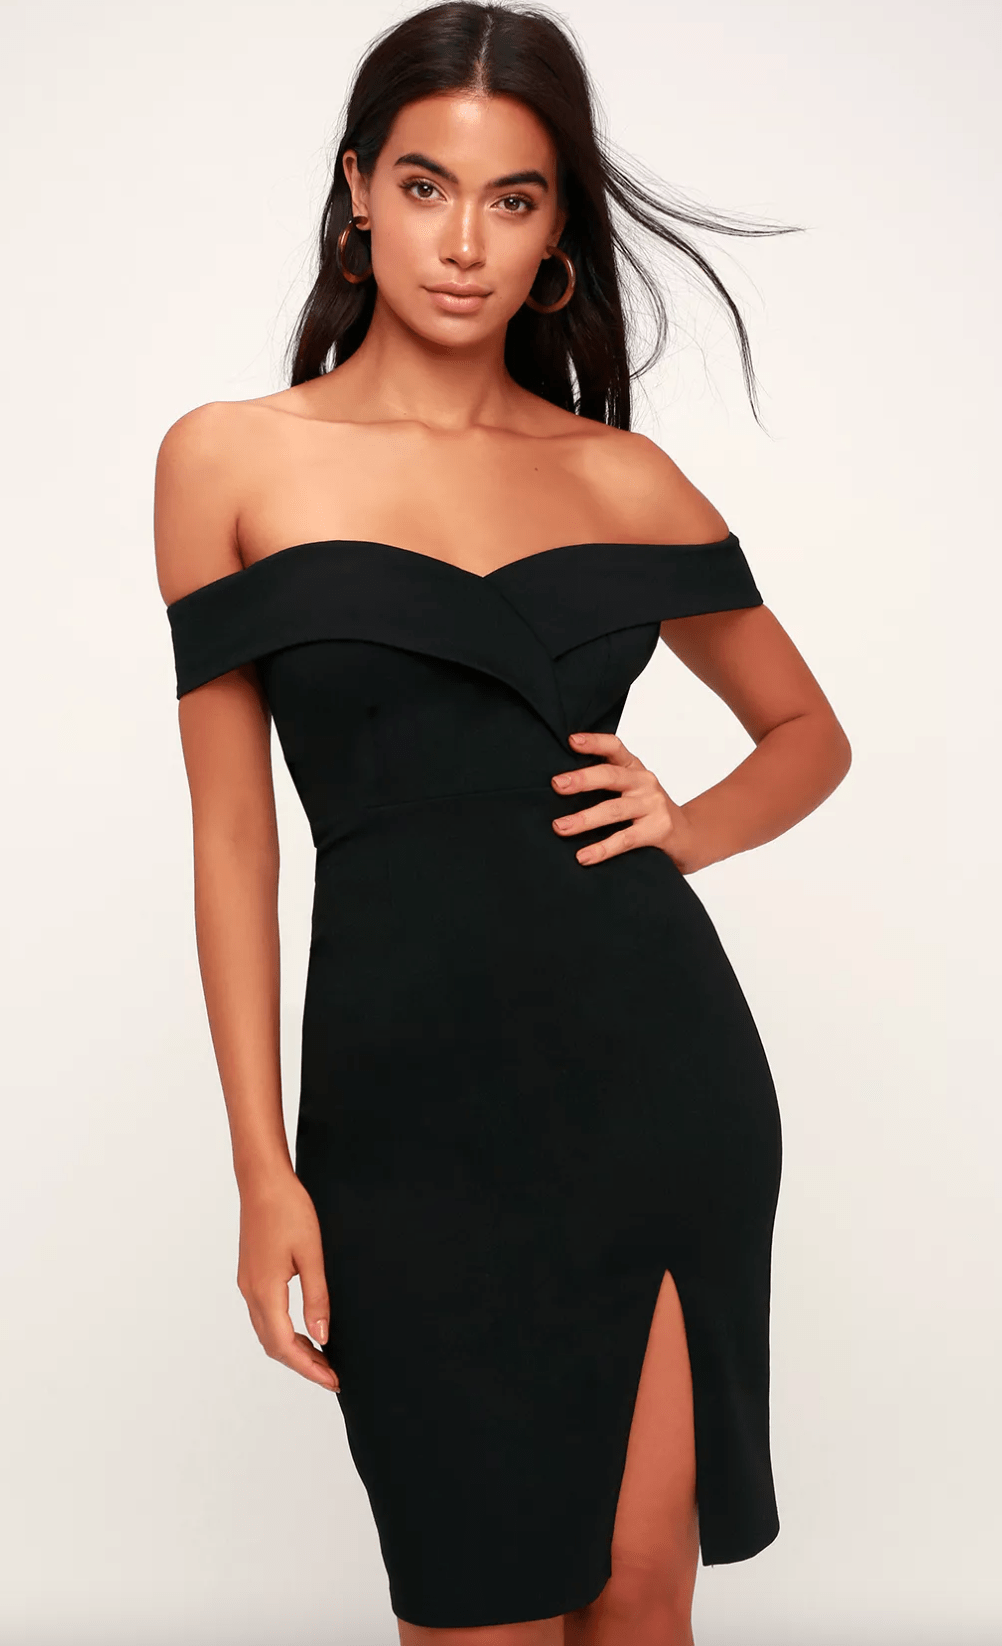 Off-the-shoulder chic black dress from Lulu's